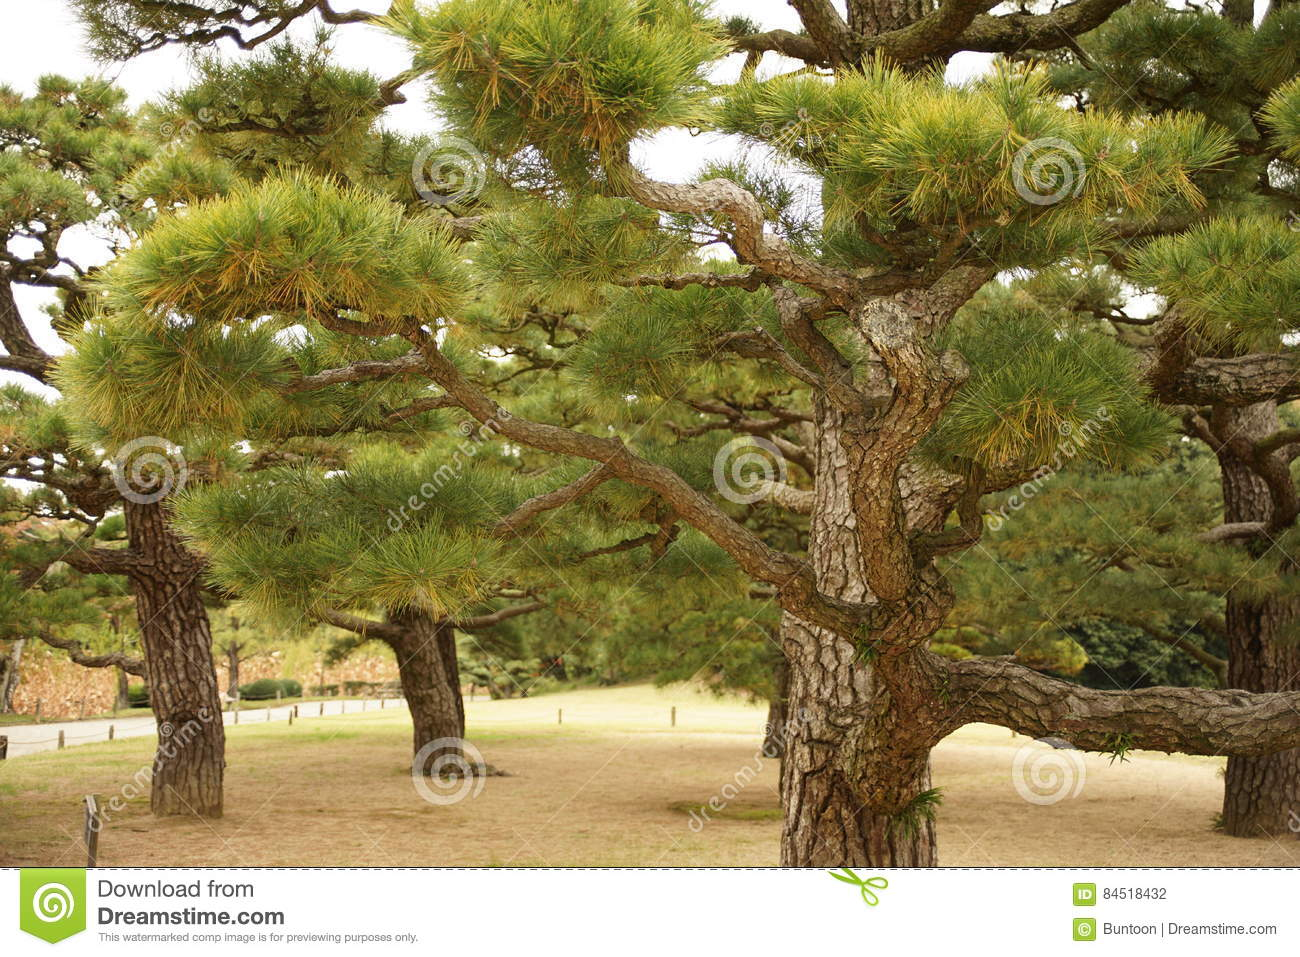 Japanese Pine Trees In The Garden Stock Photo - Image of pine ...